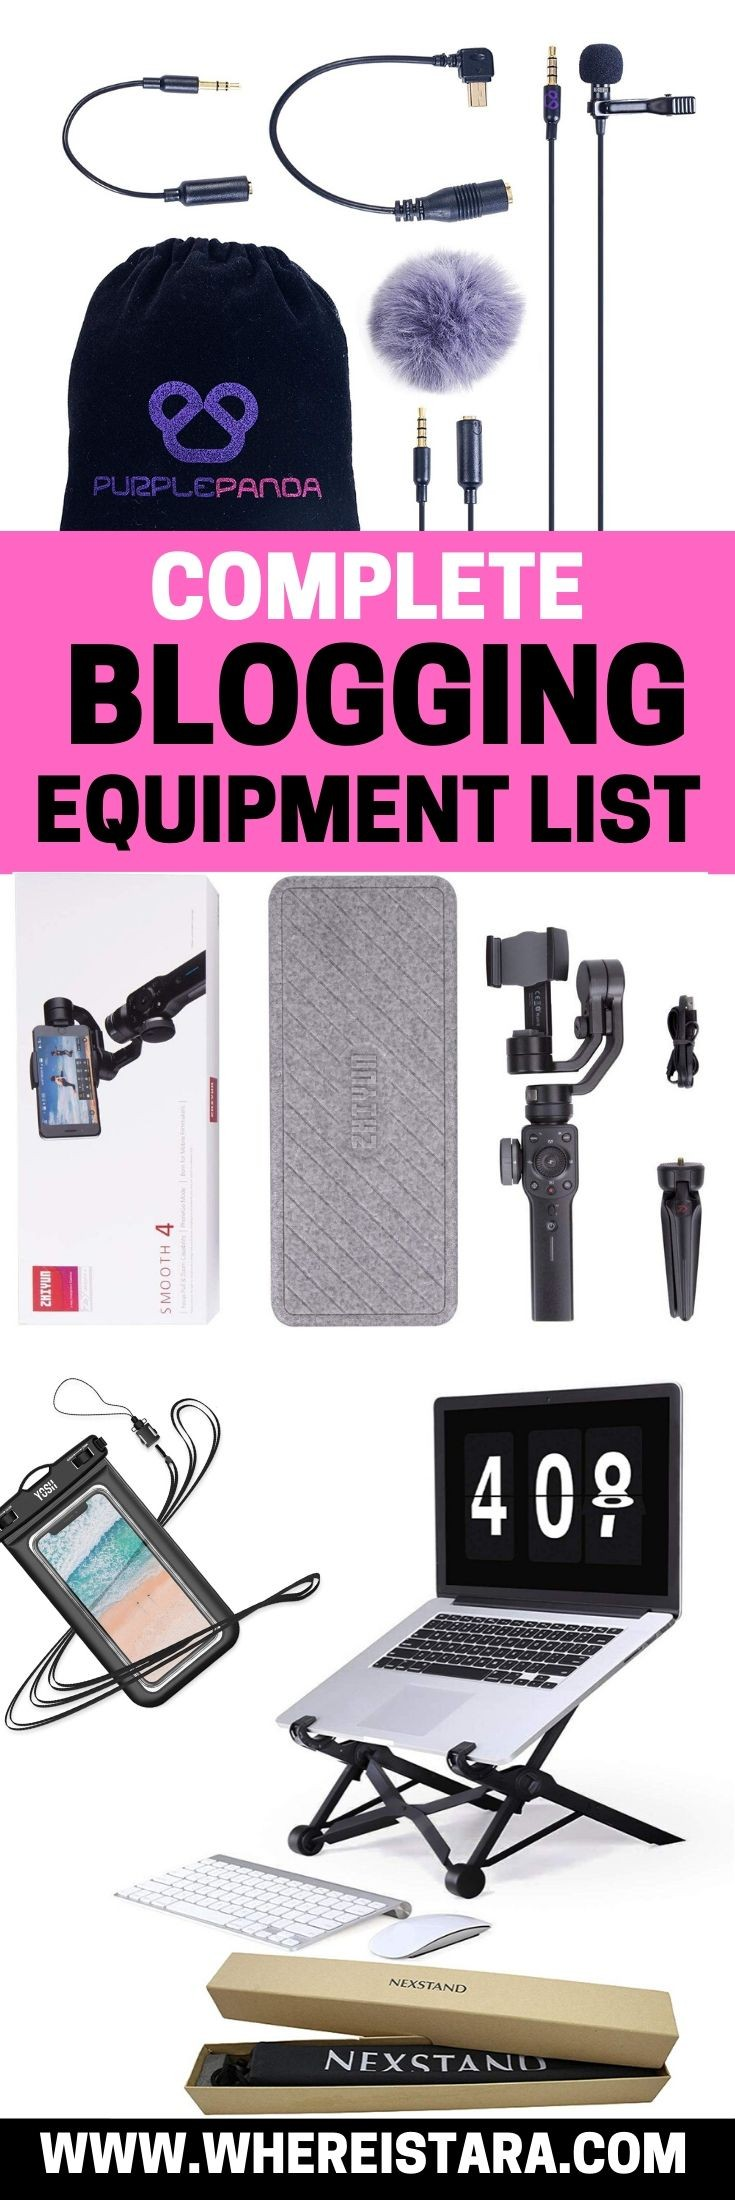 blogging equipment list pin 1 (1)